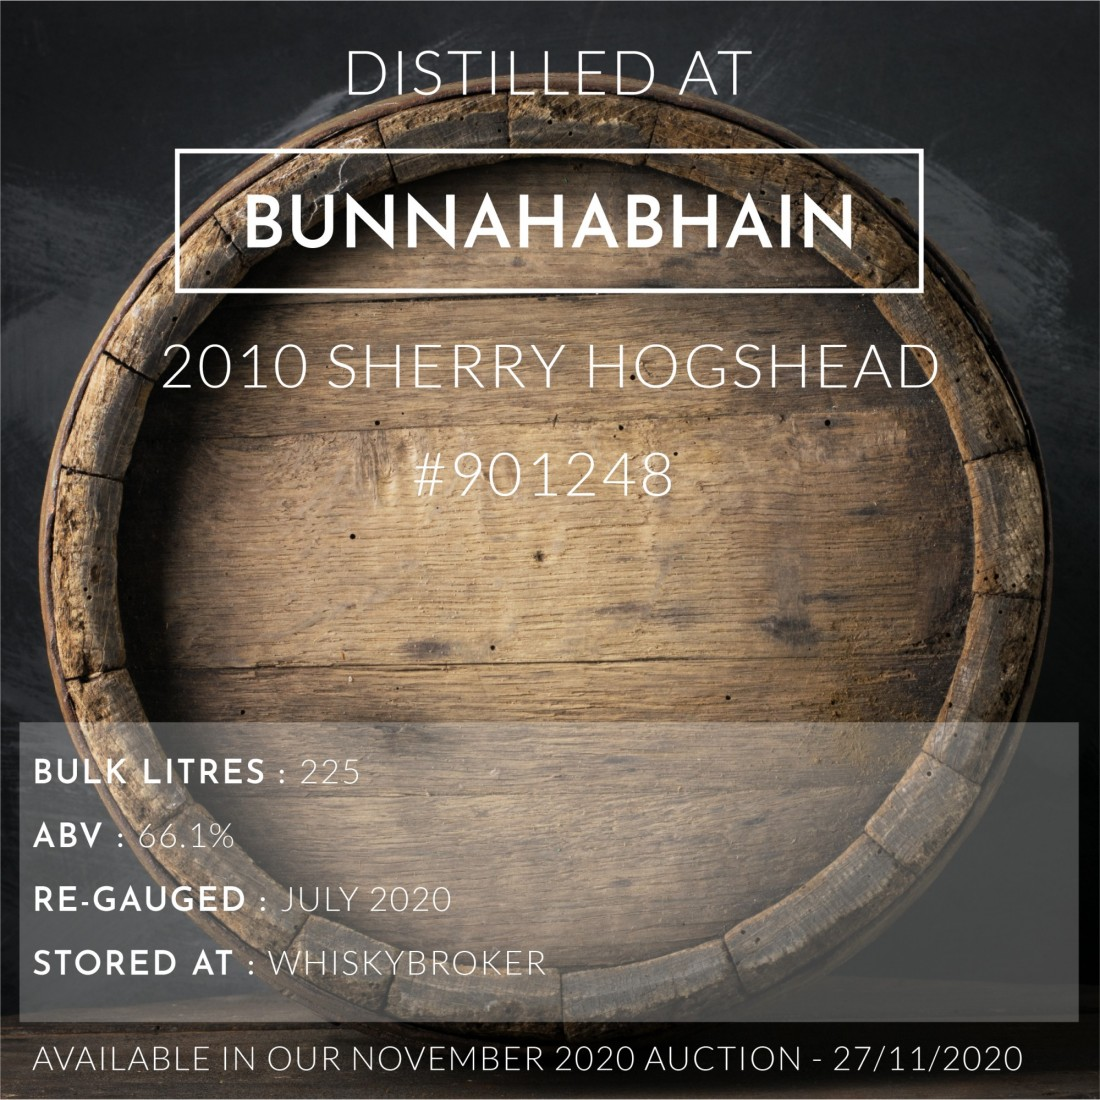 1 Bunnahabhain 2010 Sherry Hogshead #901248 / Cask in storage at Whiskybroker